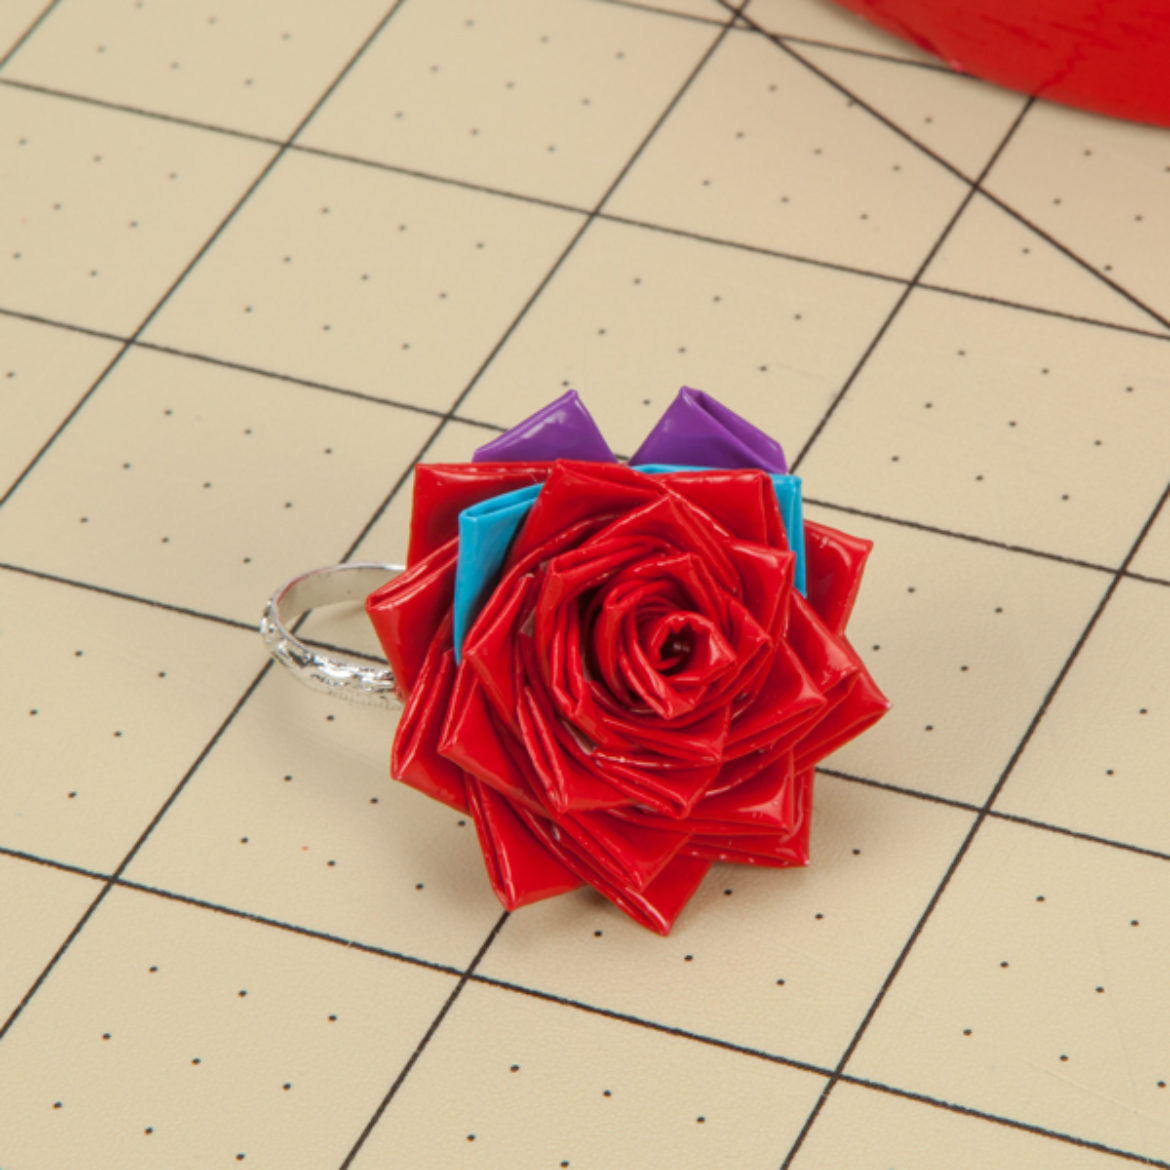 petals placed as described so that the rose forms the shape of a heart